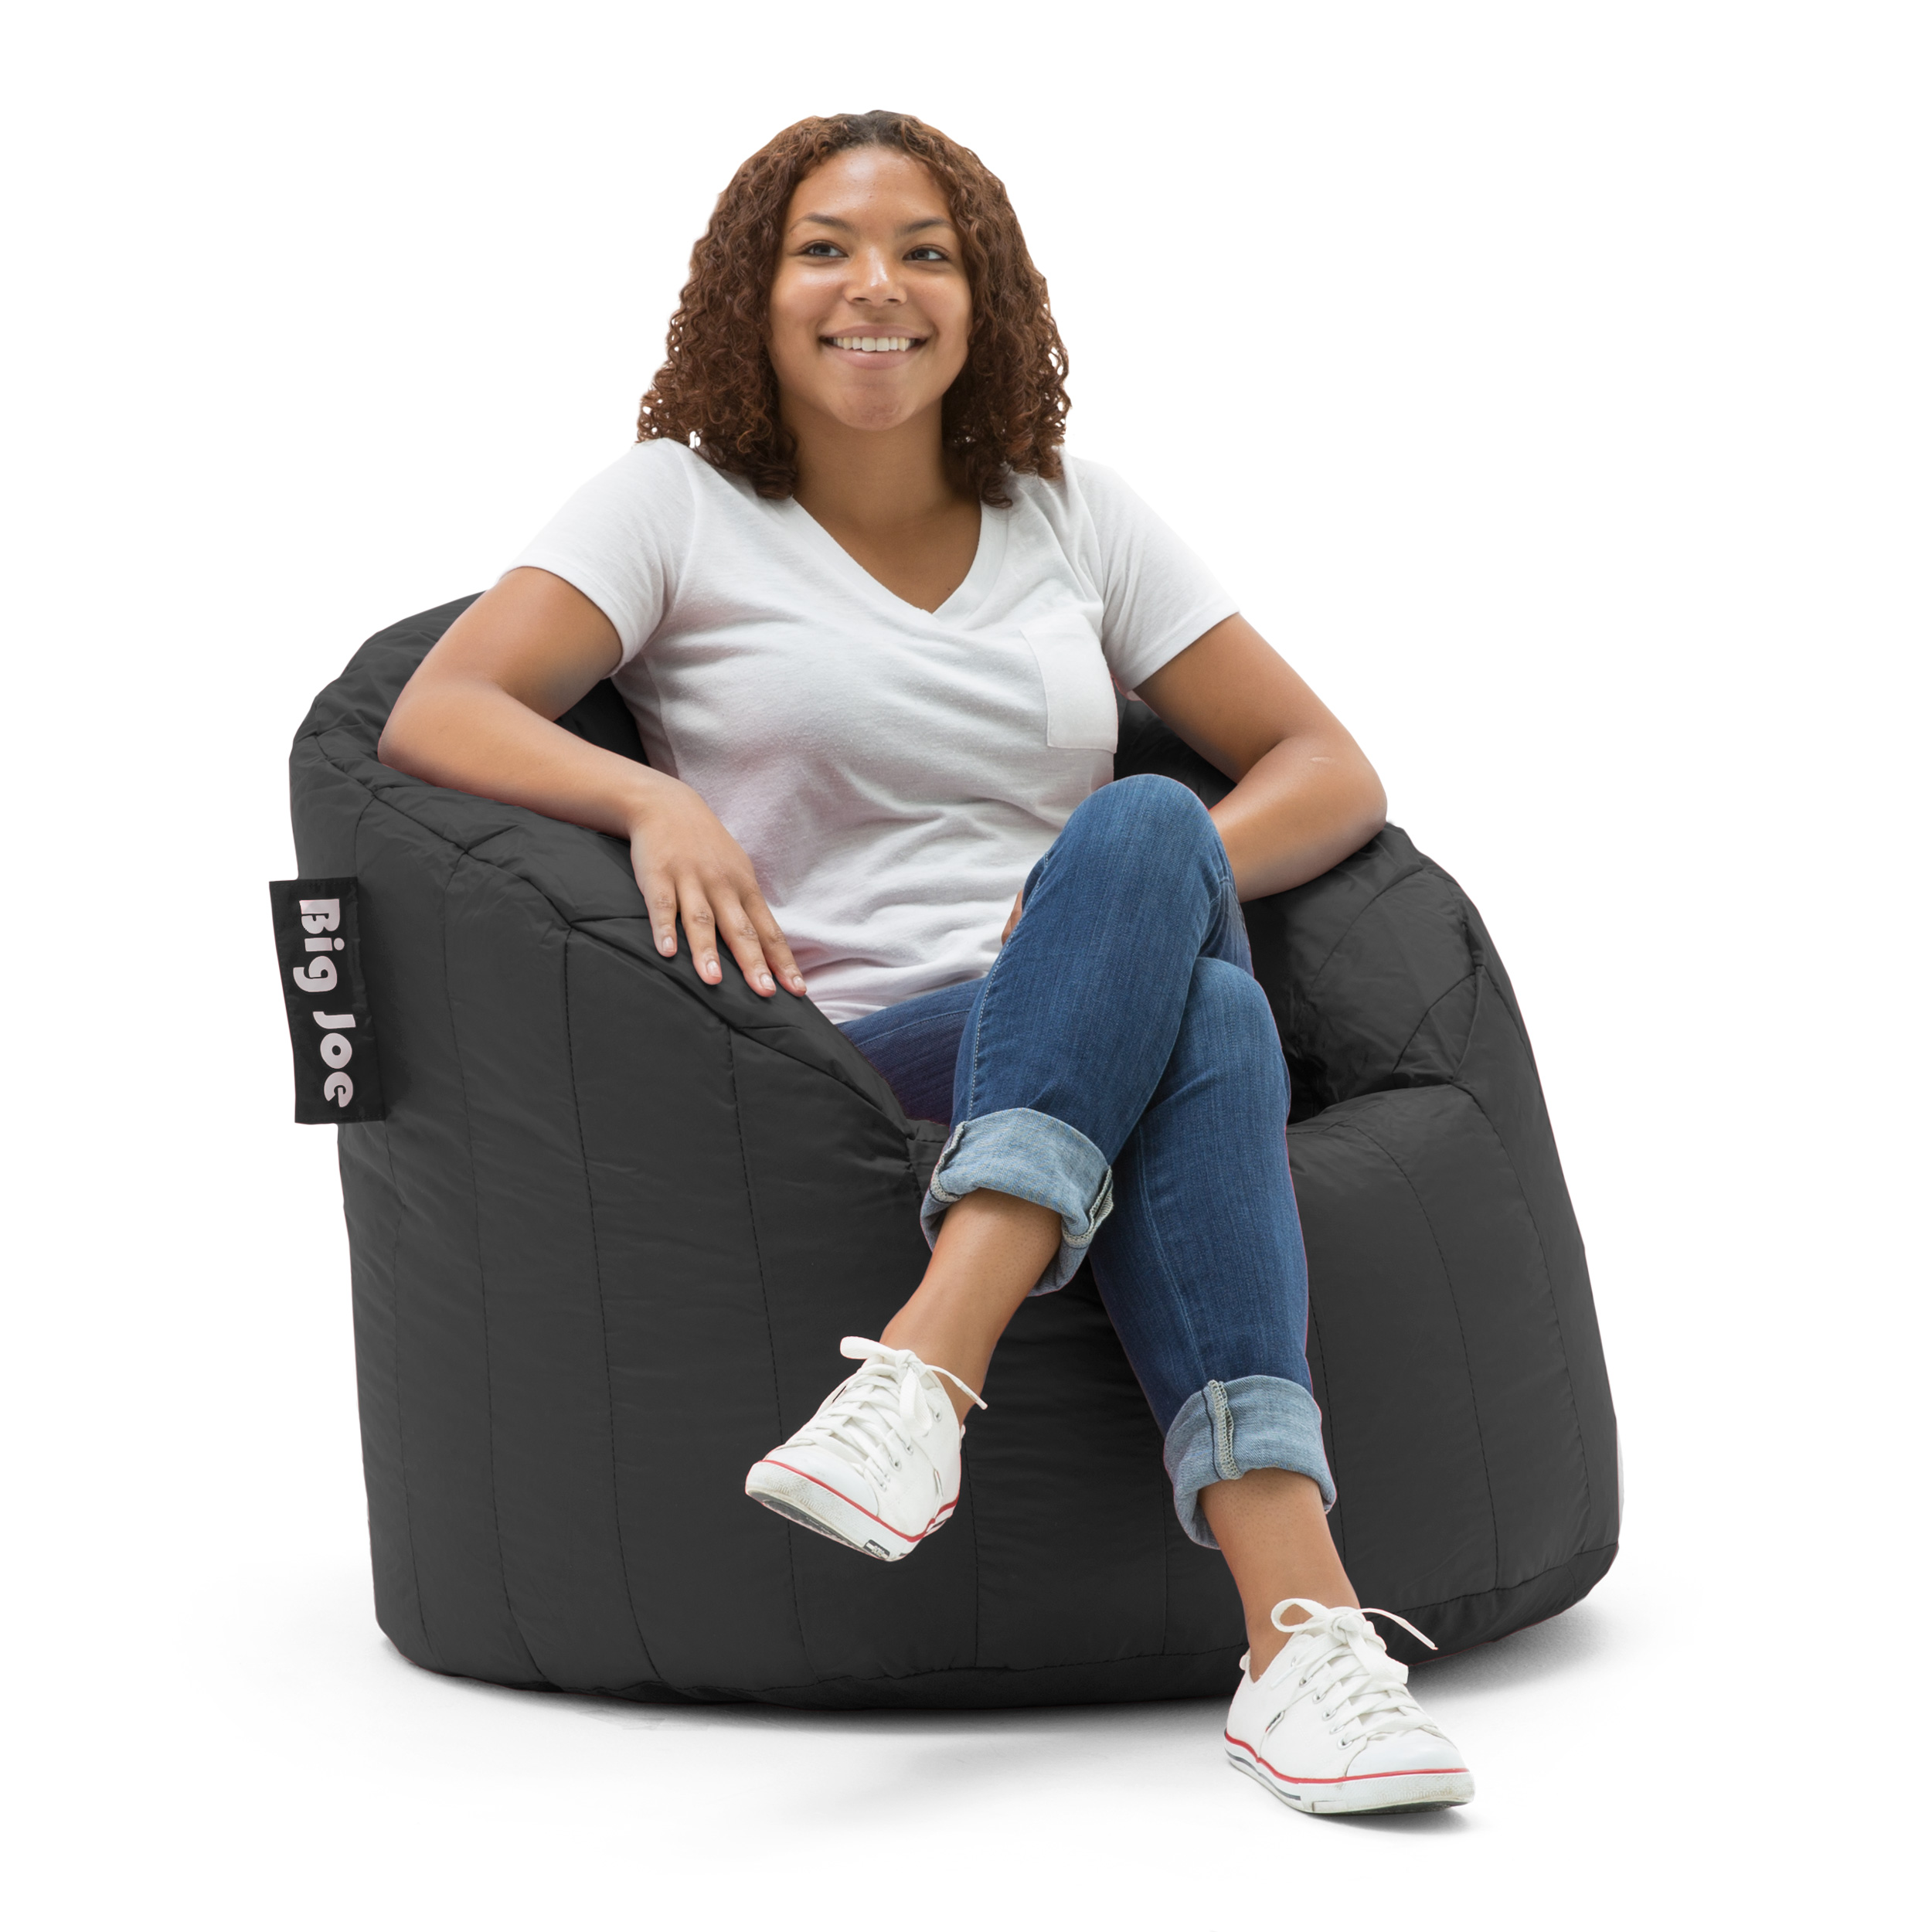 Big Joe Lumin Beanbag Chair, Available in Multiple Colors by Comfort Research